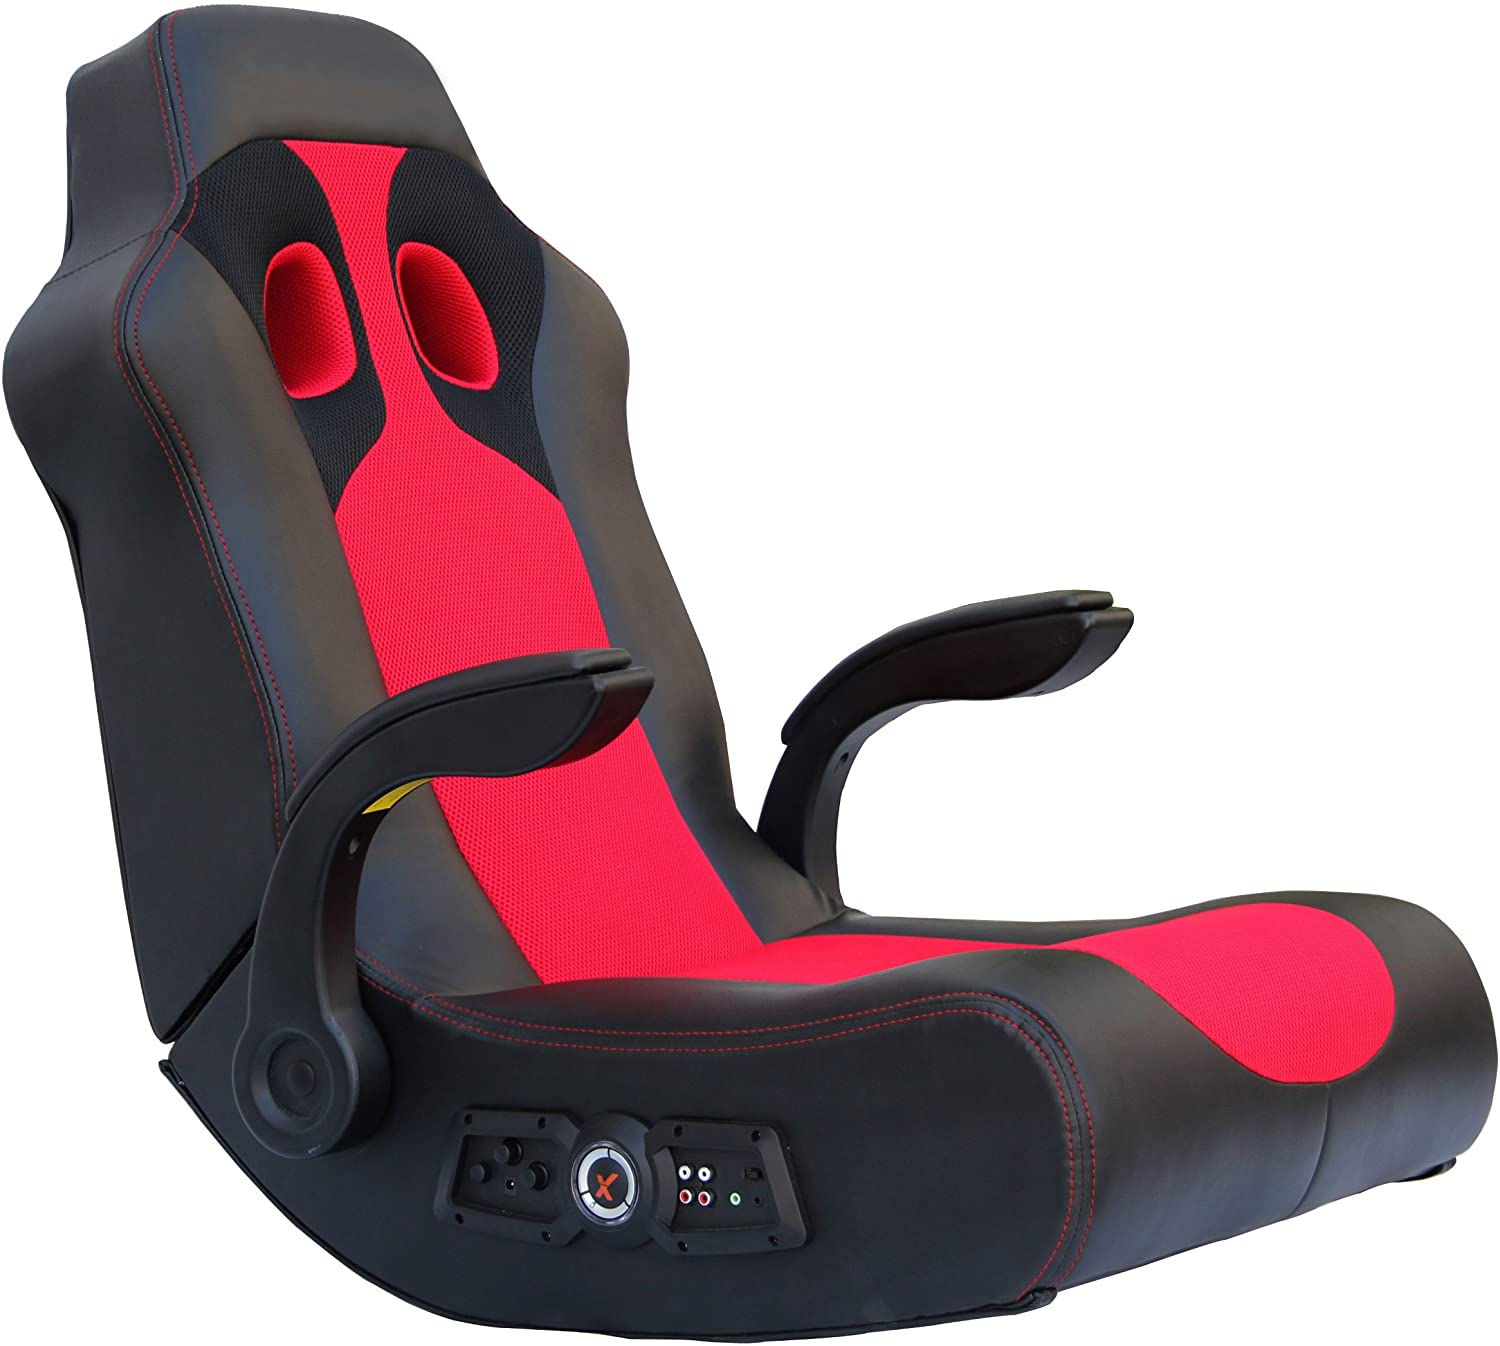 gaming chairs with speakers ps4